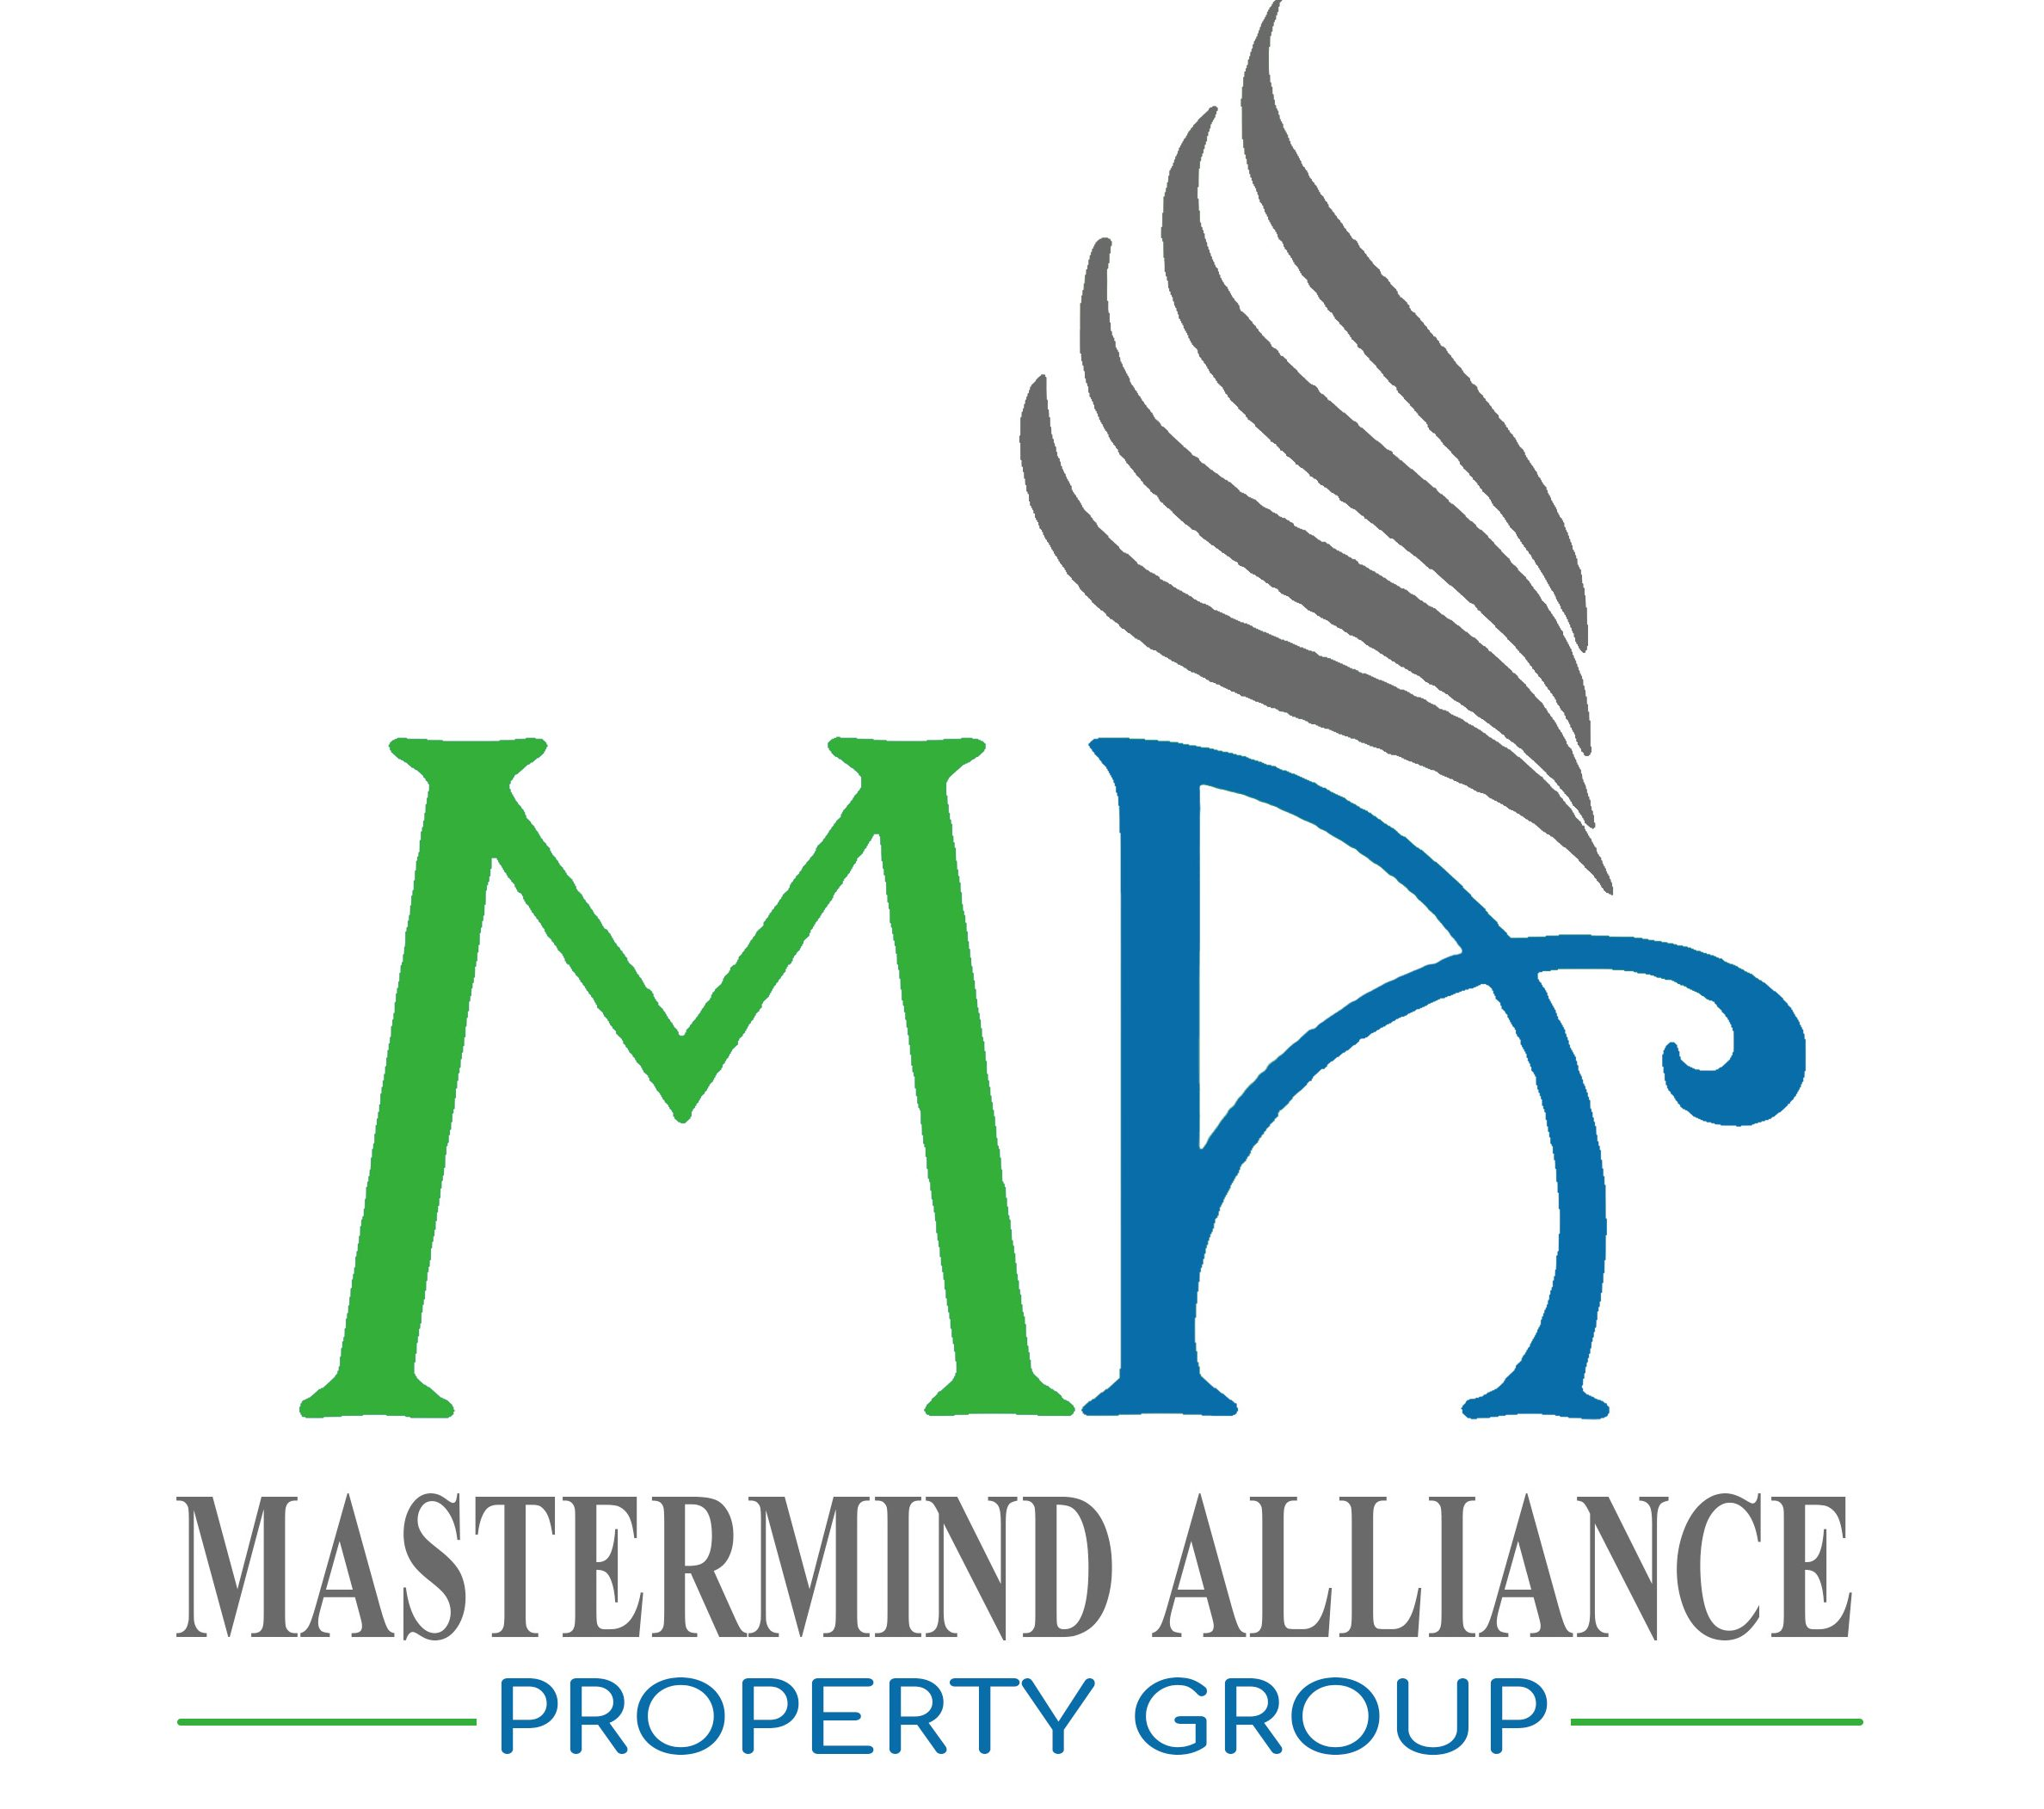 Mastermind Alliance Property Group